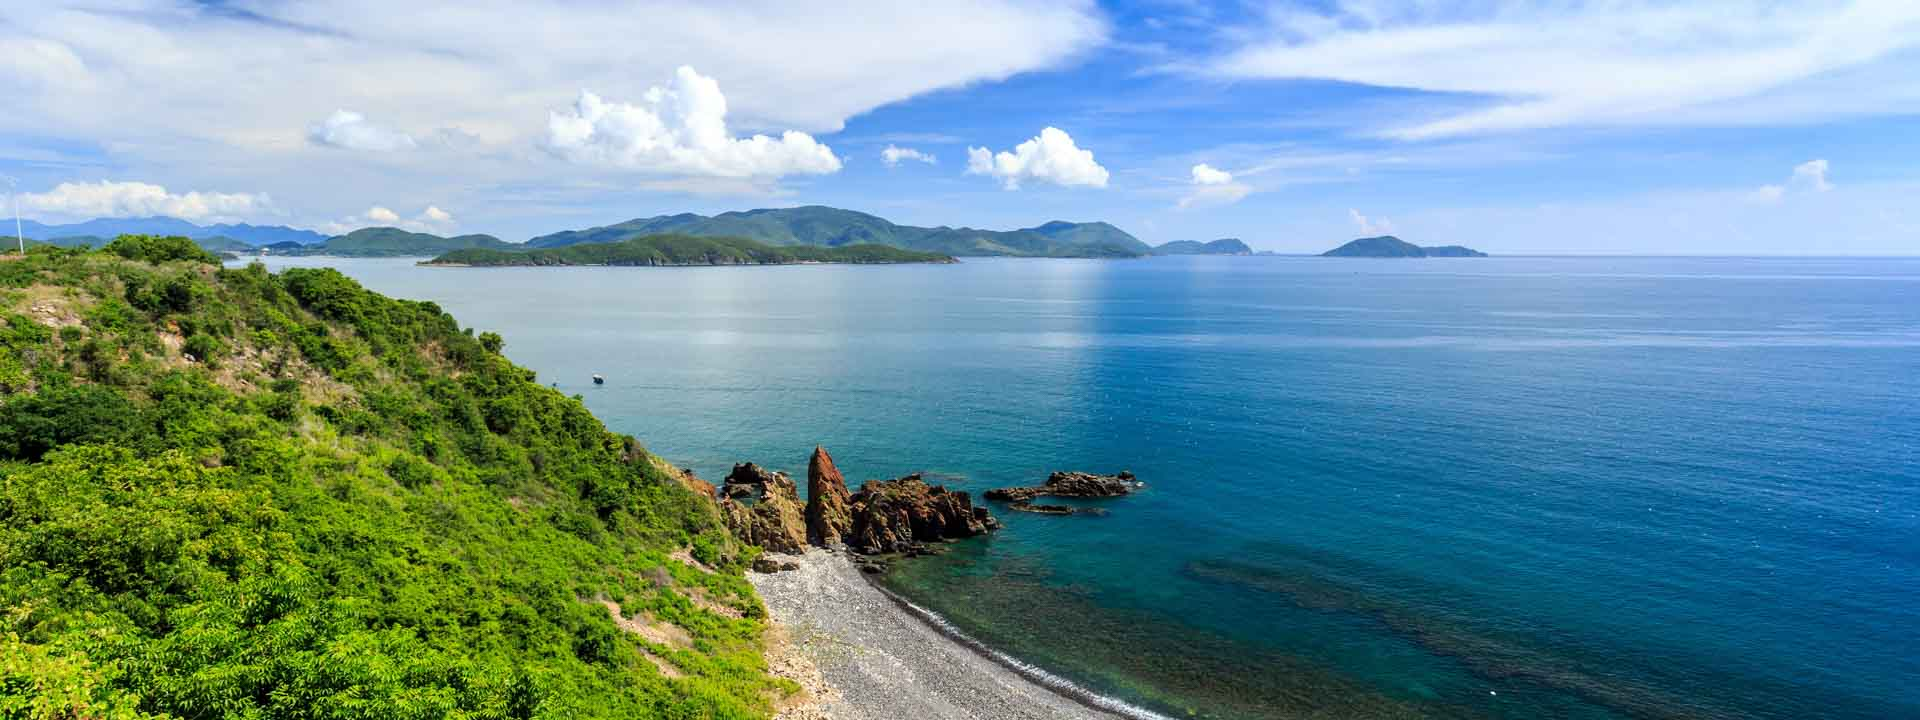 Vietnam Romantic Holiday 10 days